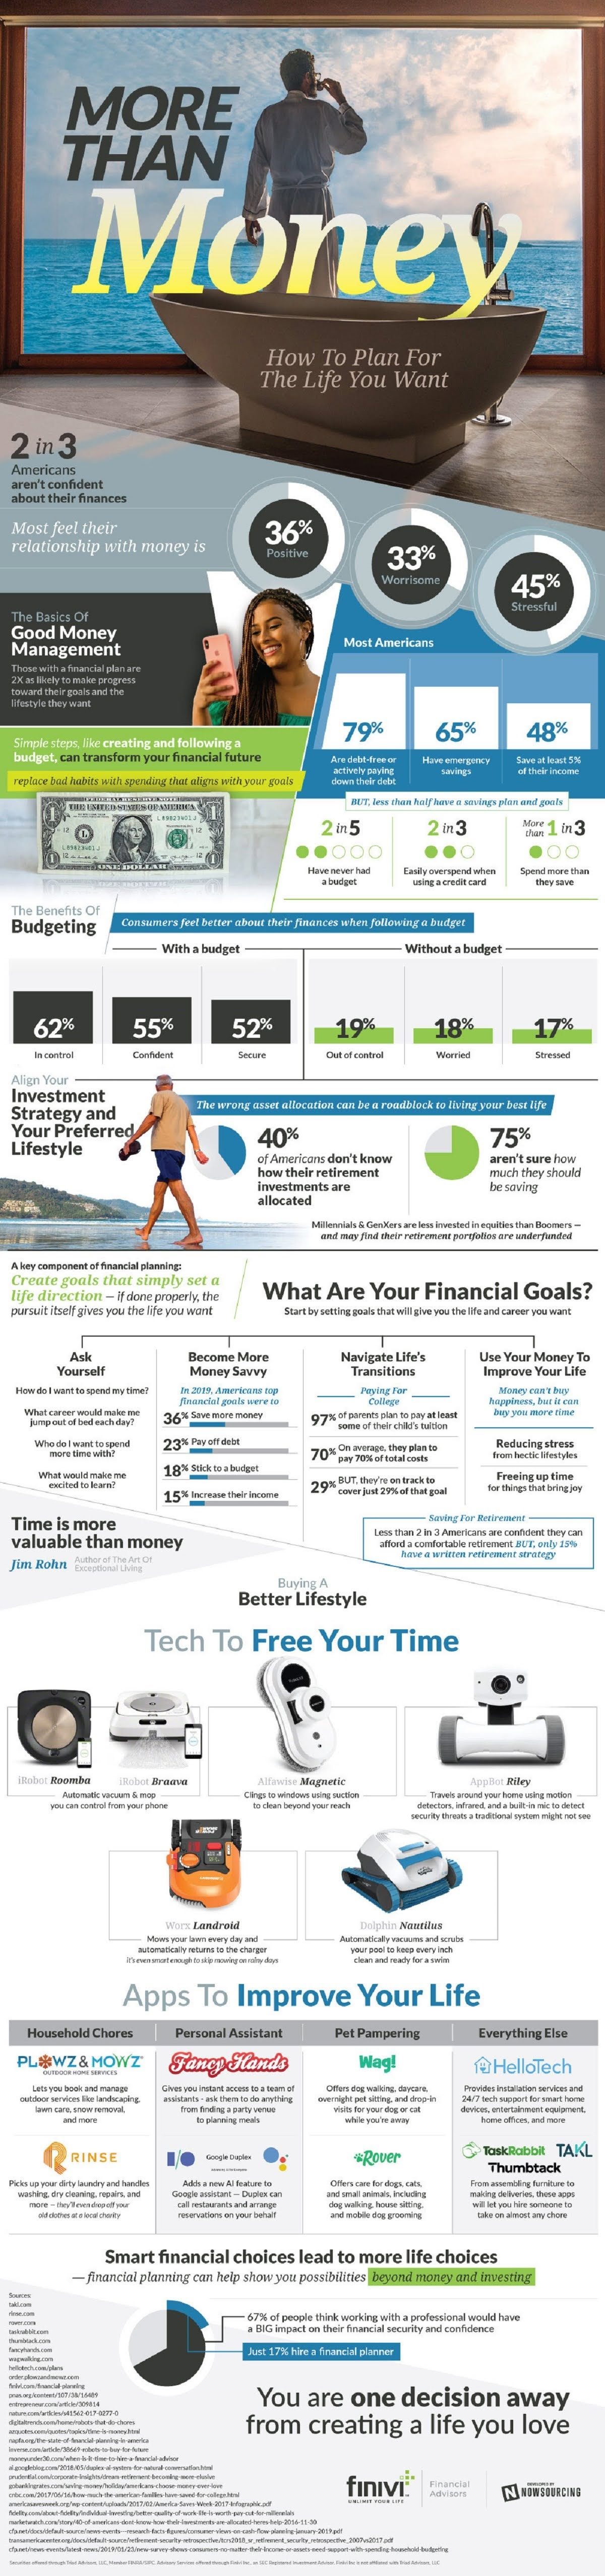 more-than-money-how-to-plan-for-the-life-you-want-infographic